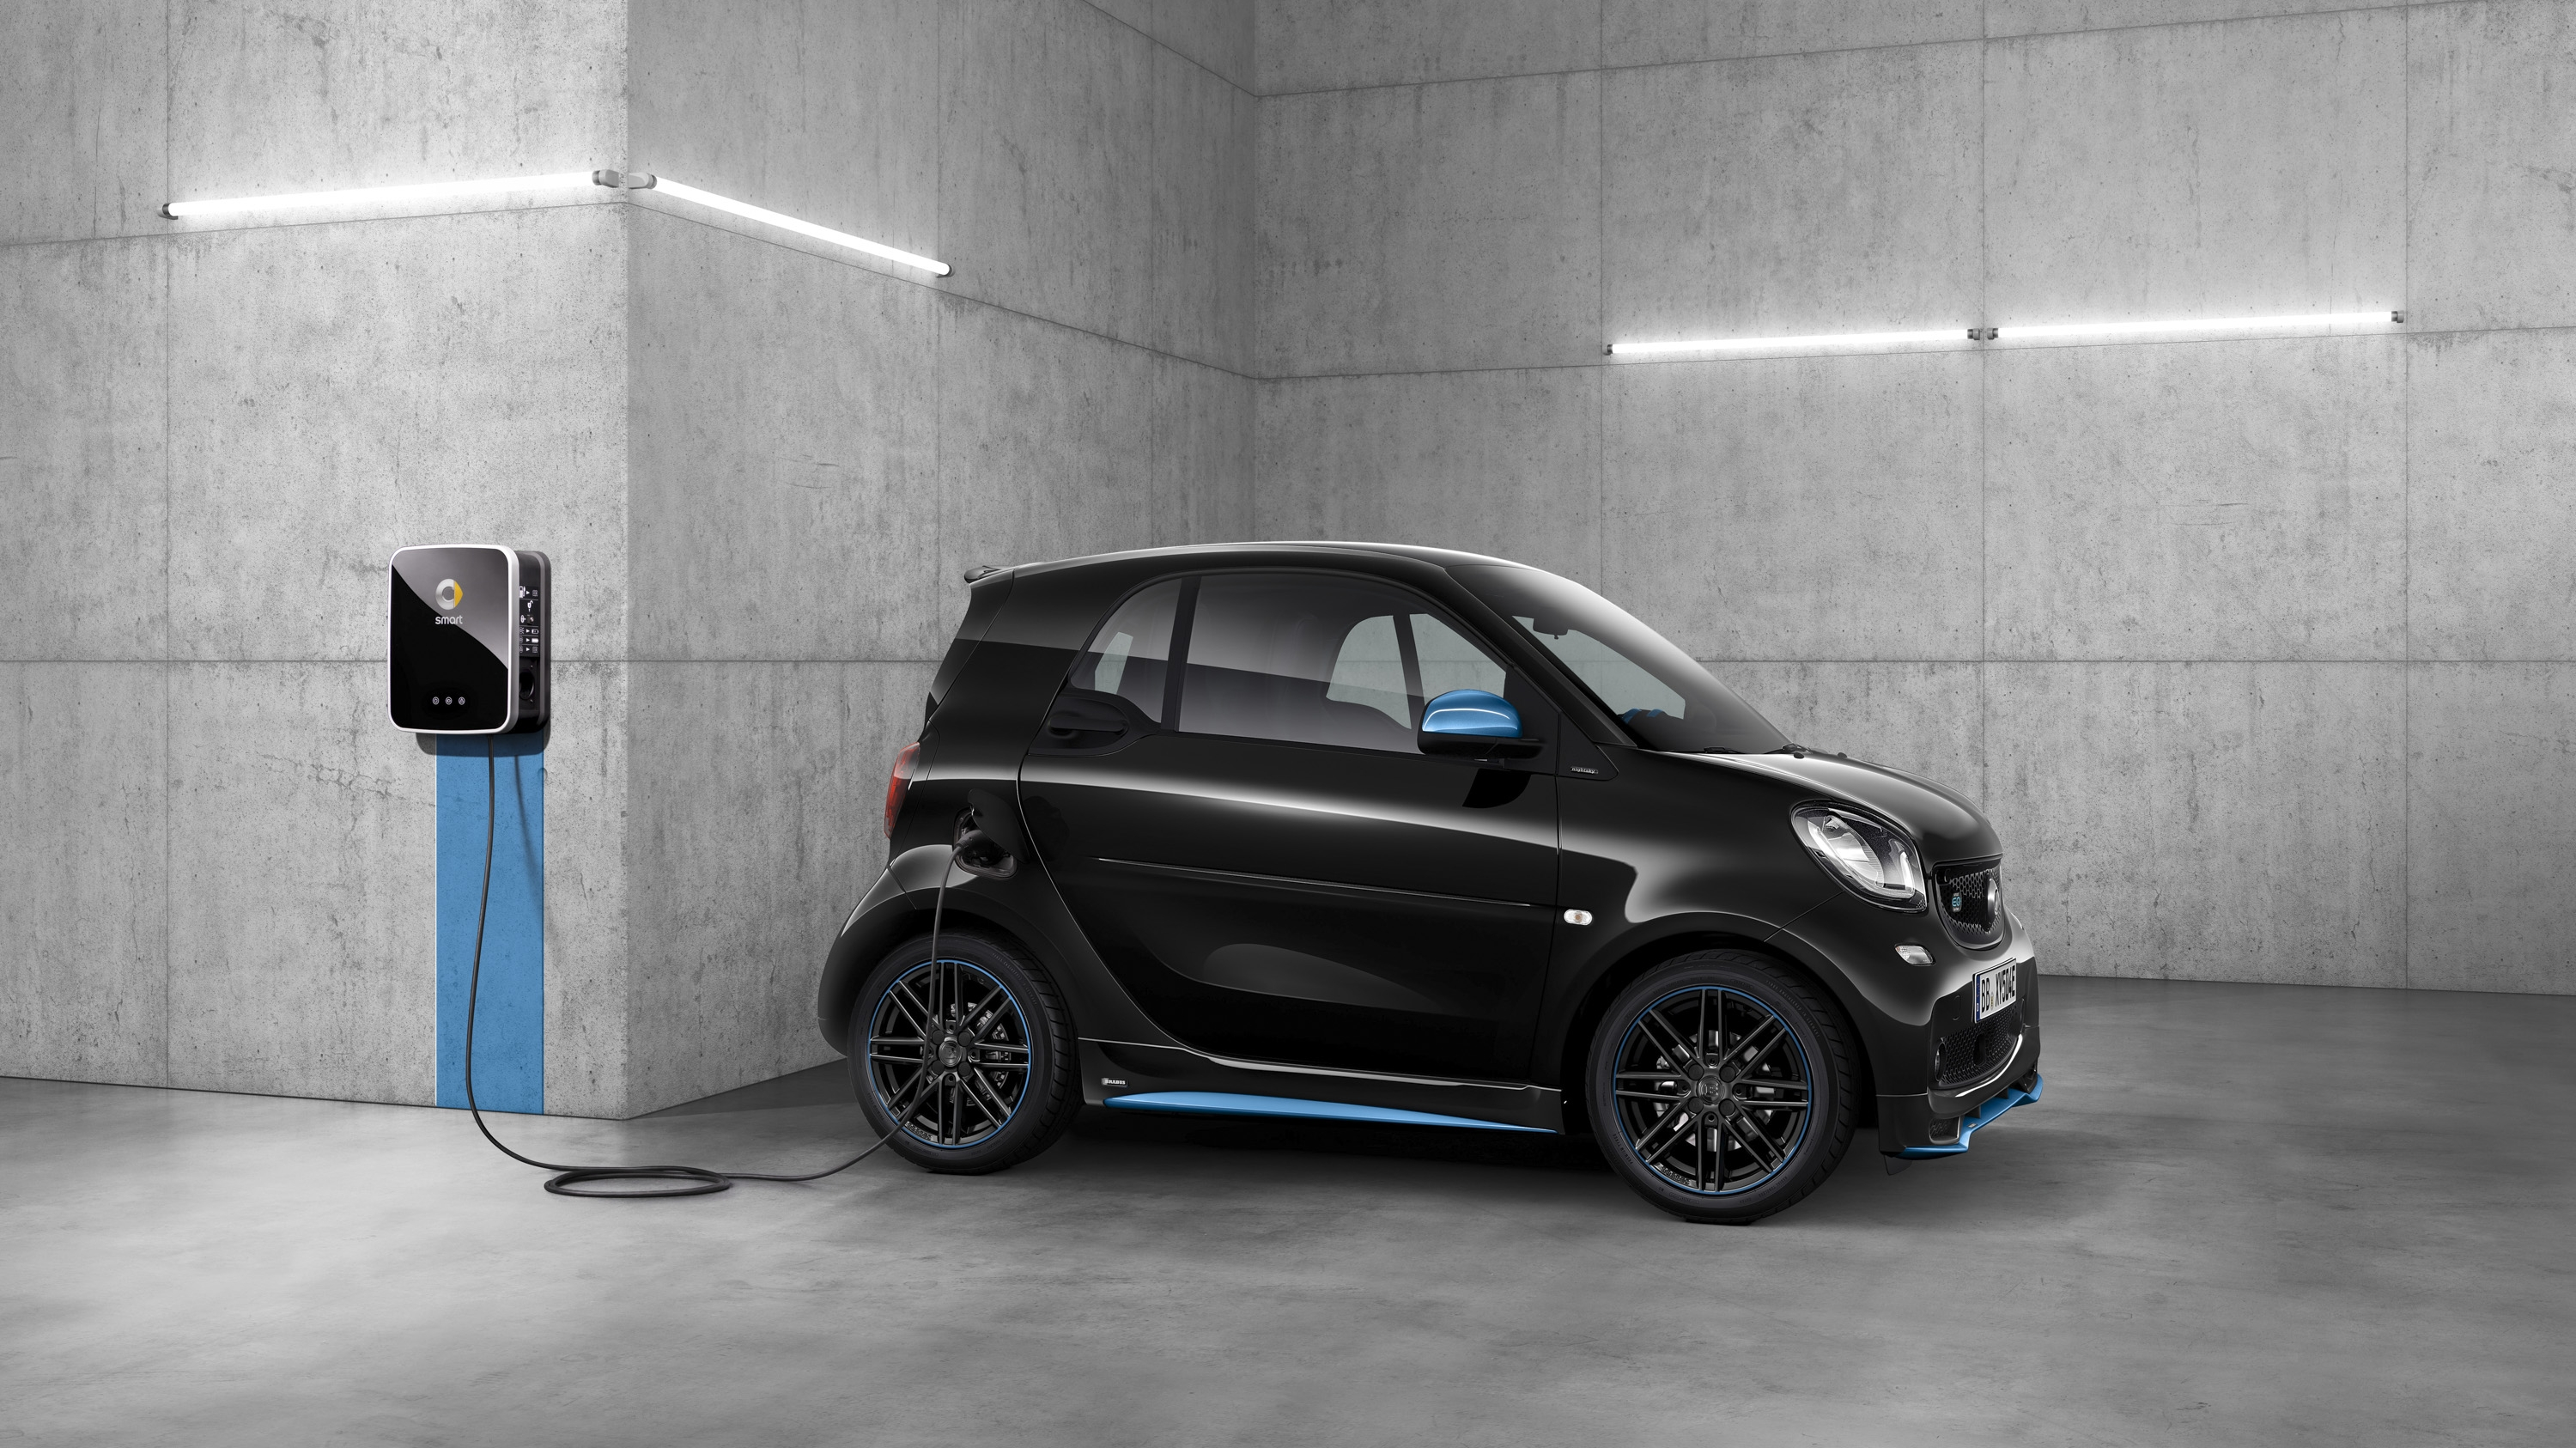 Smart Car To Become Global EV Brand, Taking Over Europe Once North ...